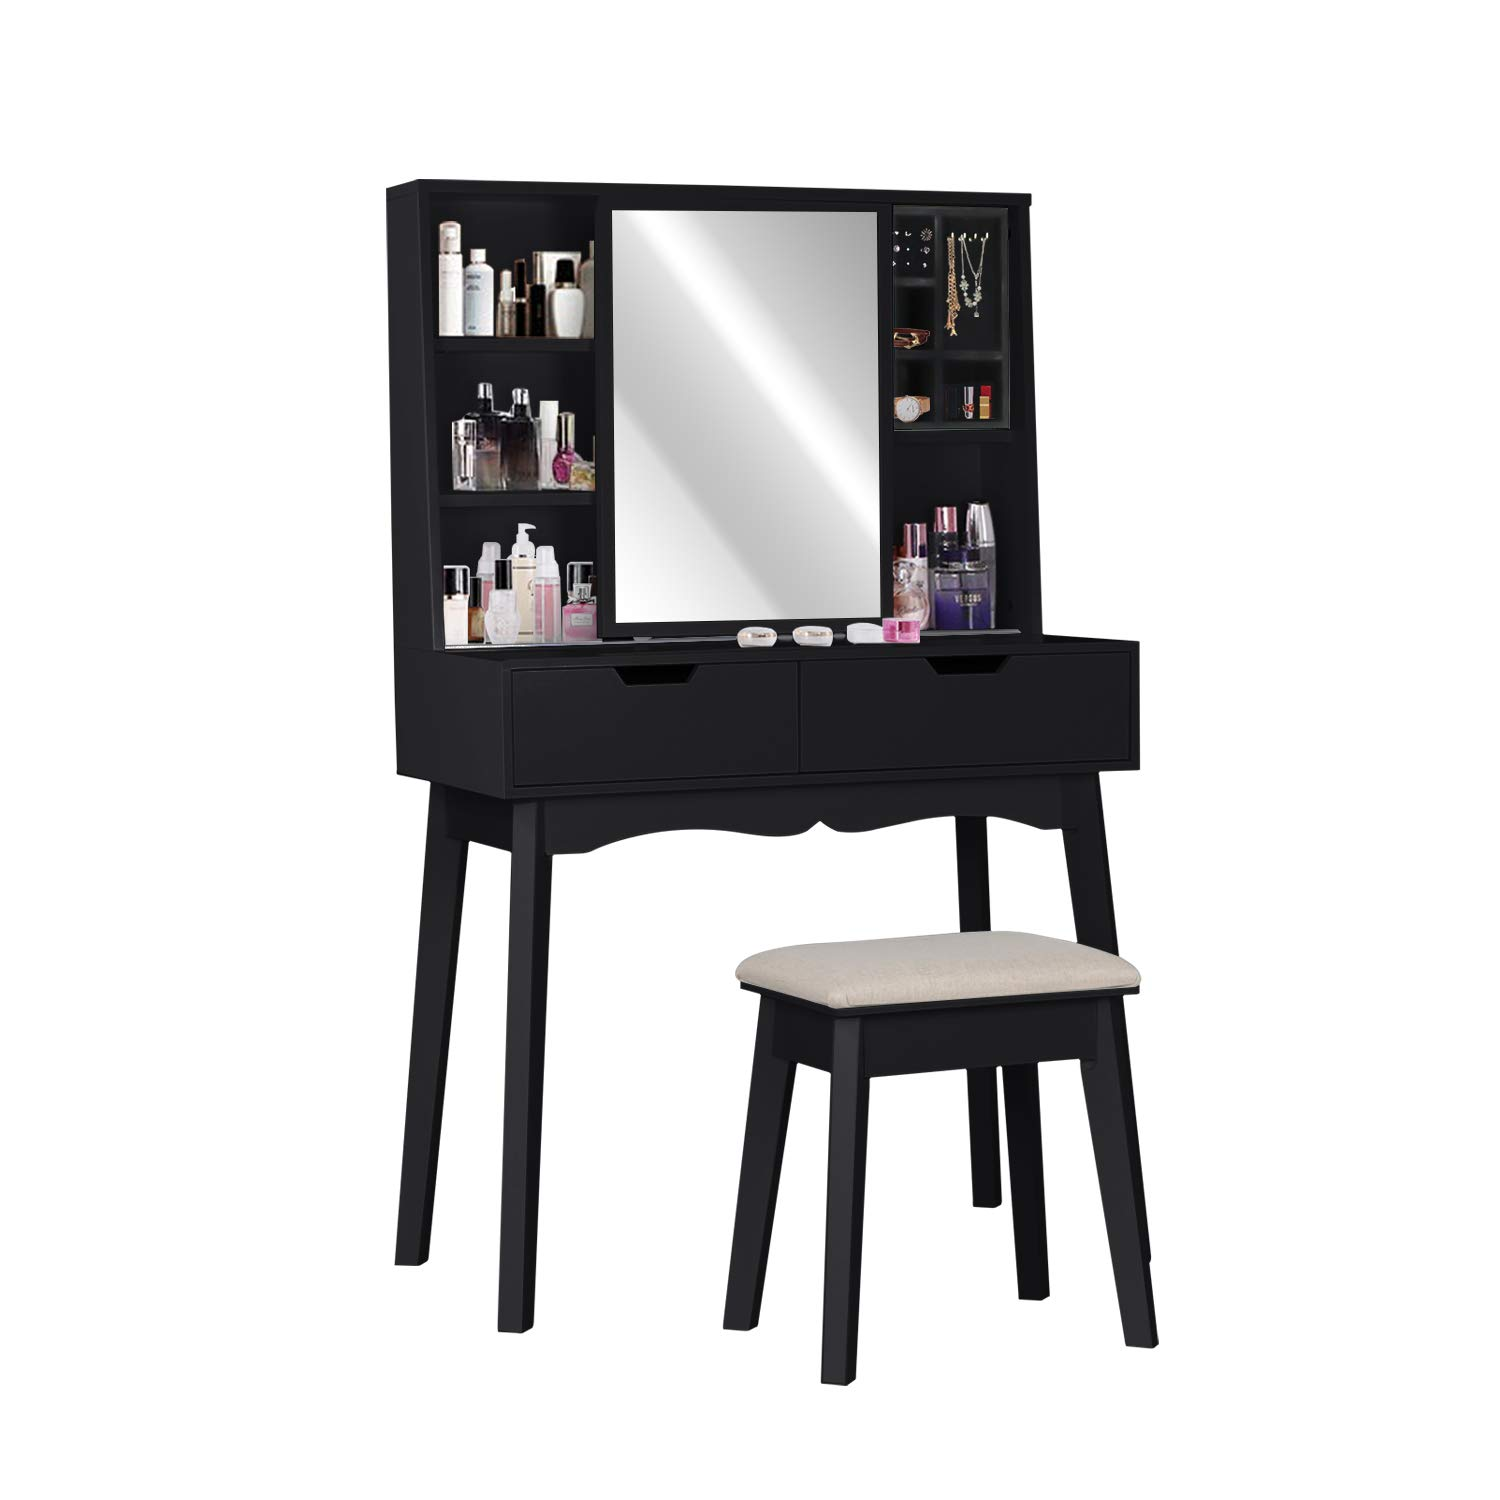 Vanity Table Set with Mirror and Makeup Organizer Dressing Table,2 Large Drawers with Sliding Rails,Storage Shelves,Jewelry Box,Cushioned Stool,Makeup Vanity Desk by LYNSLIM